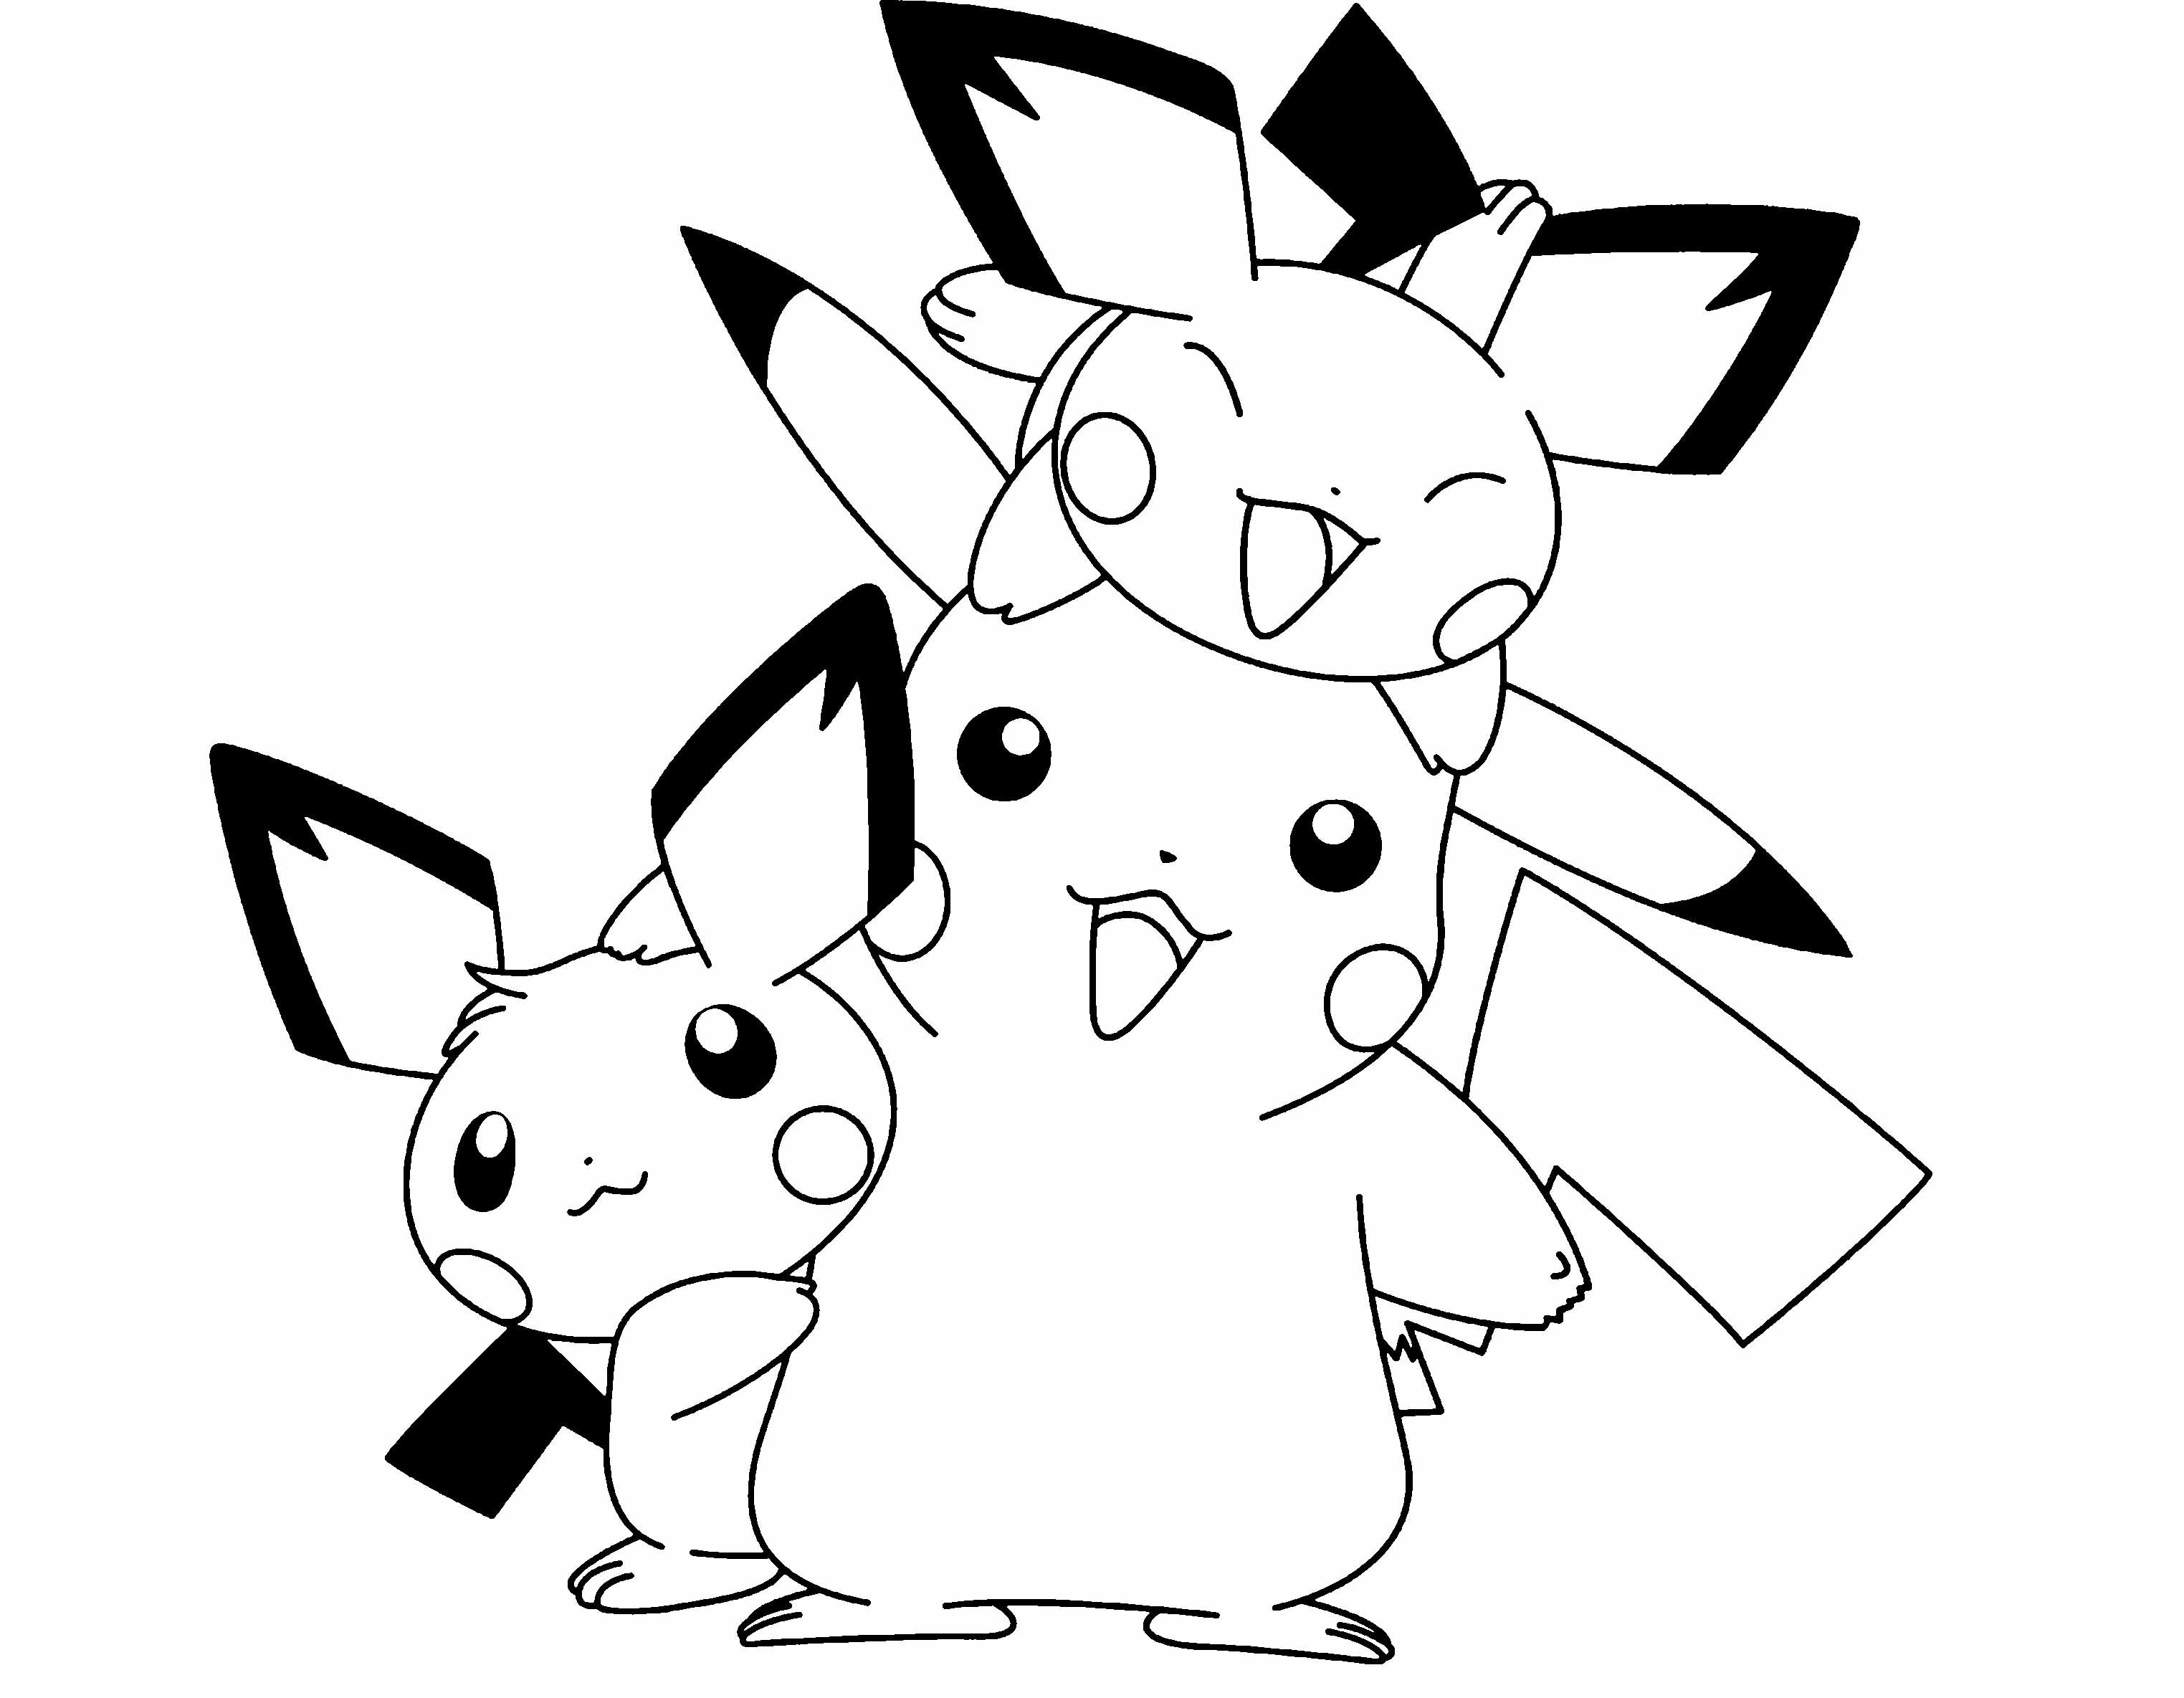 coloring pokemon black and white pokemon coloring pages pikachu at getcoloringscom free black and white coloring pokemon